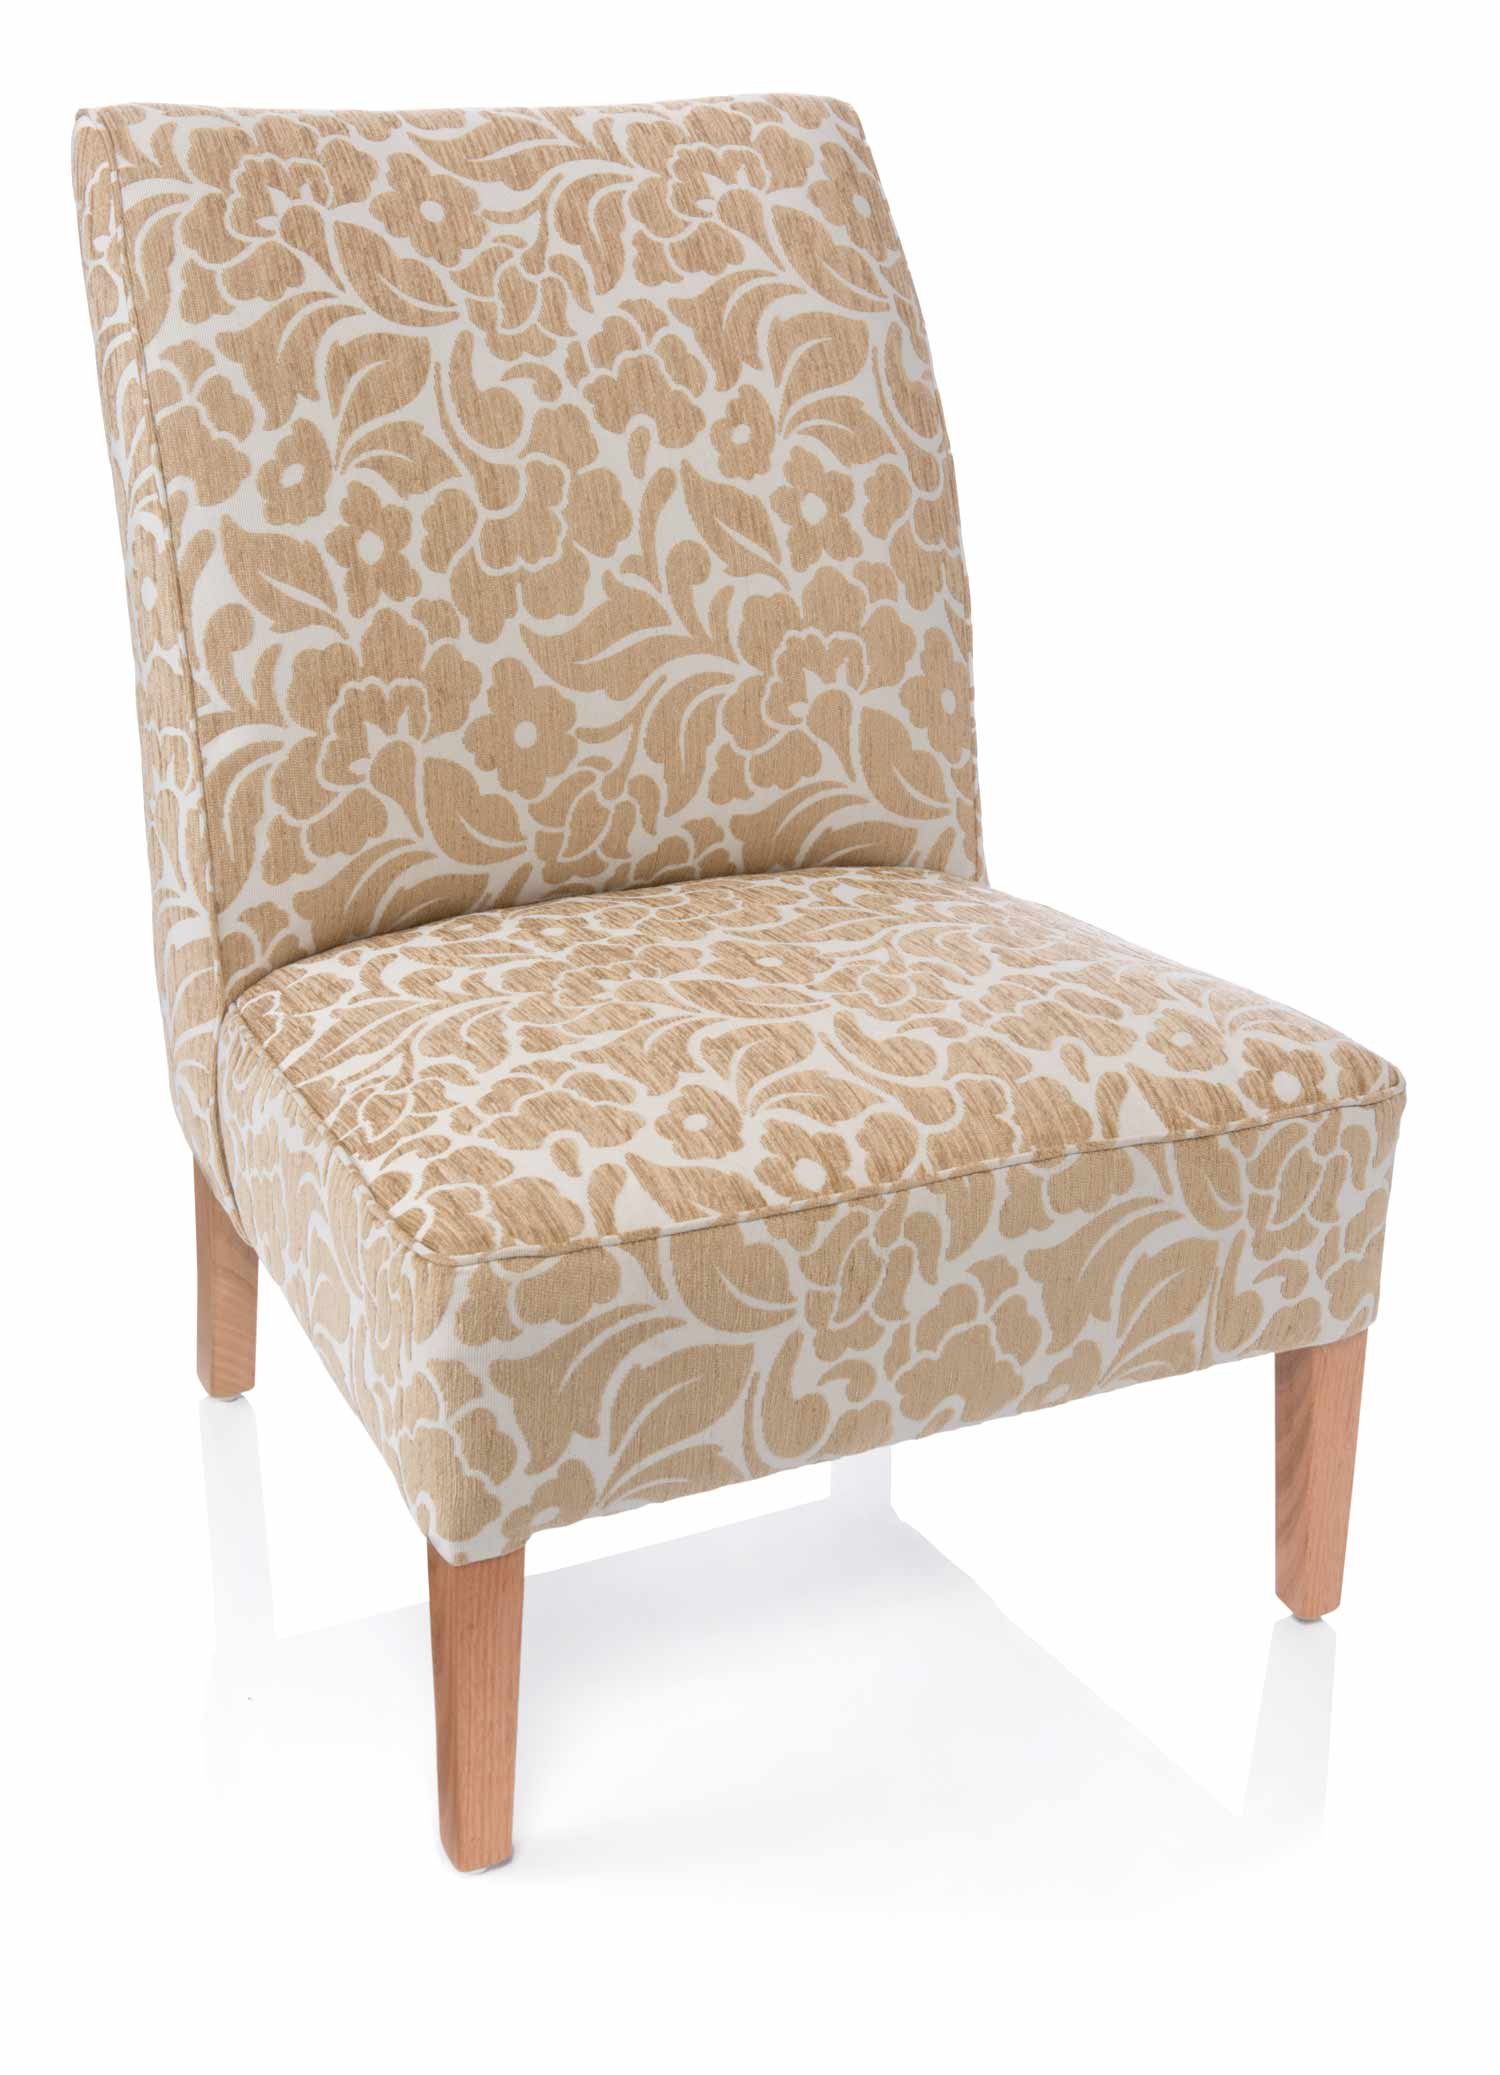 accent bedroom chairs leather dining johannesburg fully upholstered occasional chair natural sienna zepel mega spa image 1